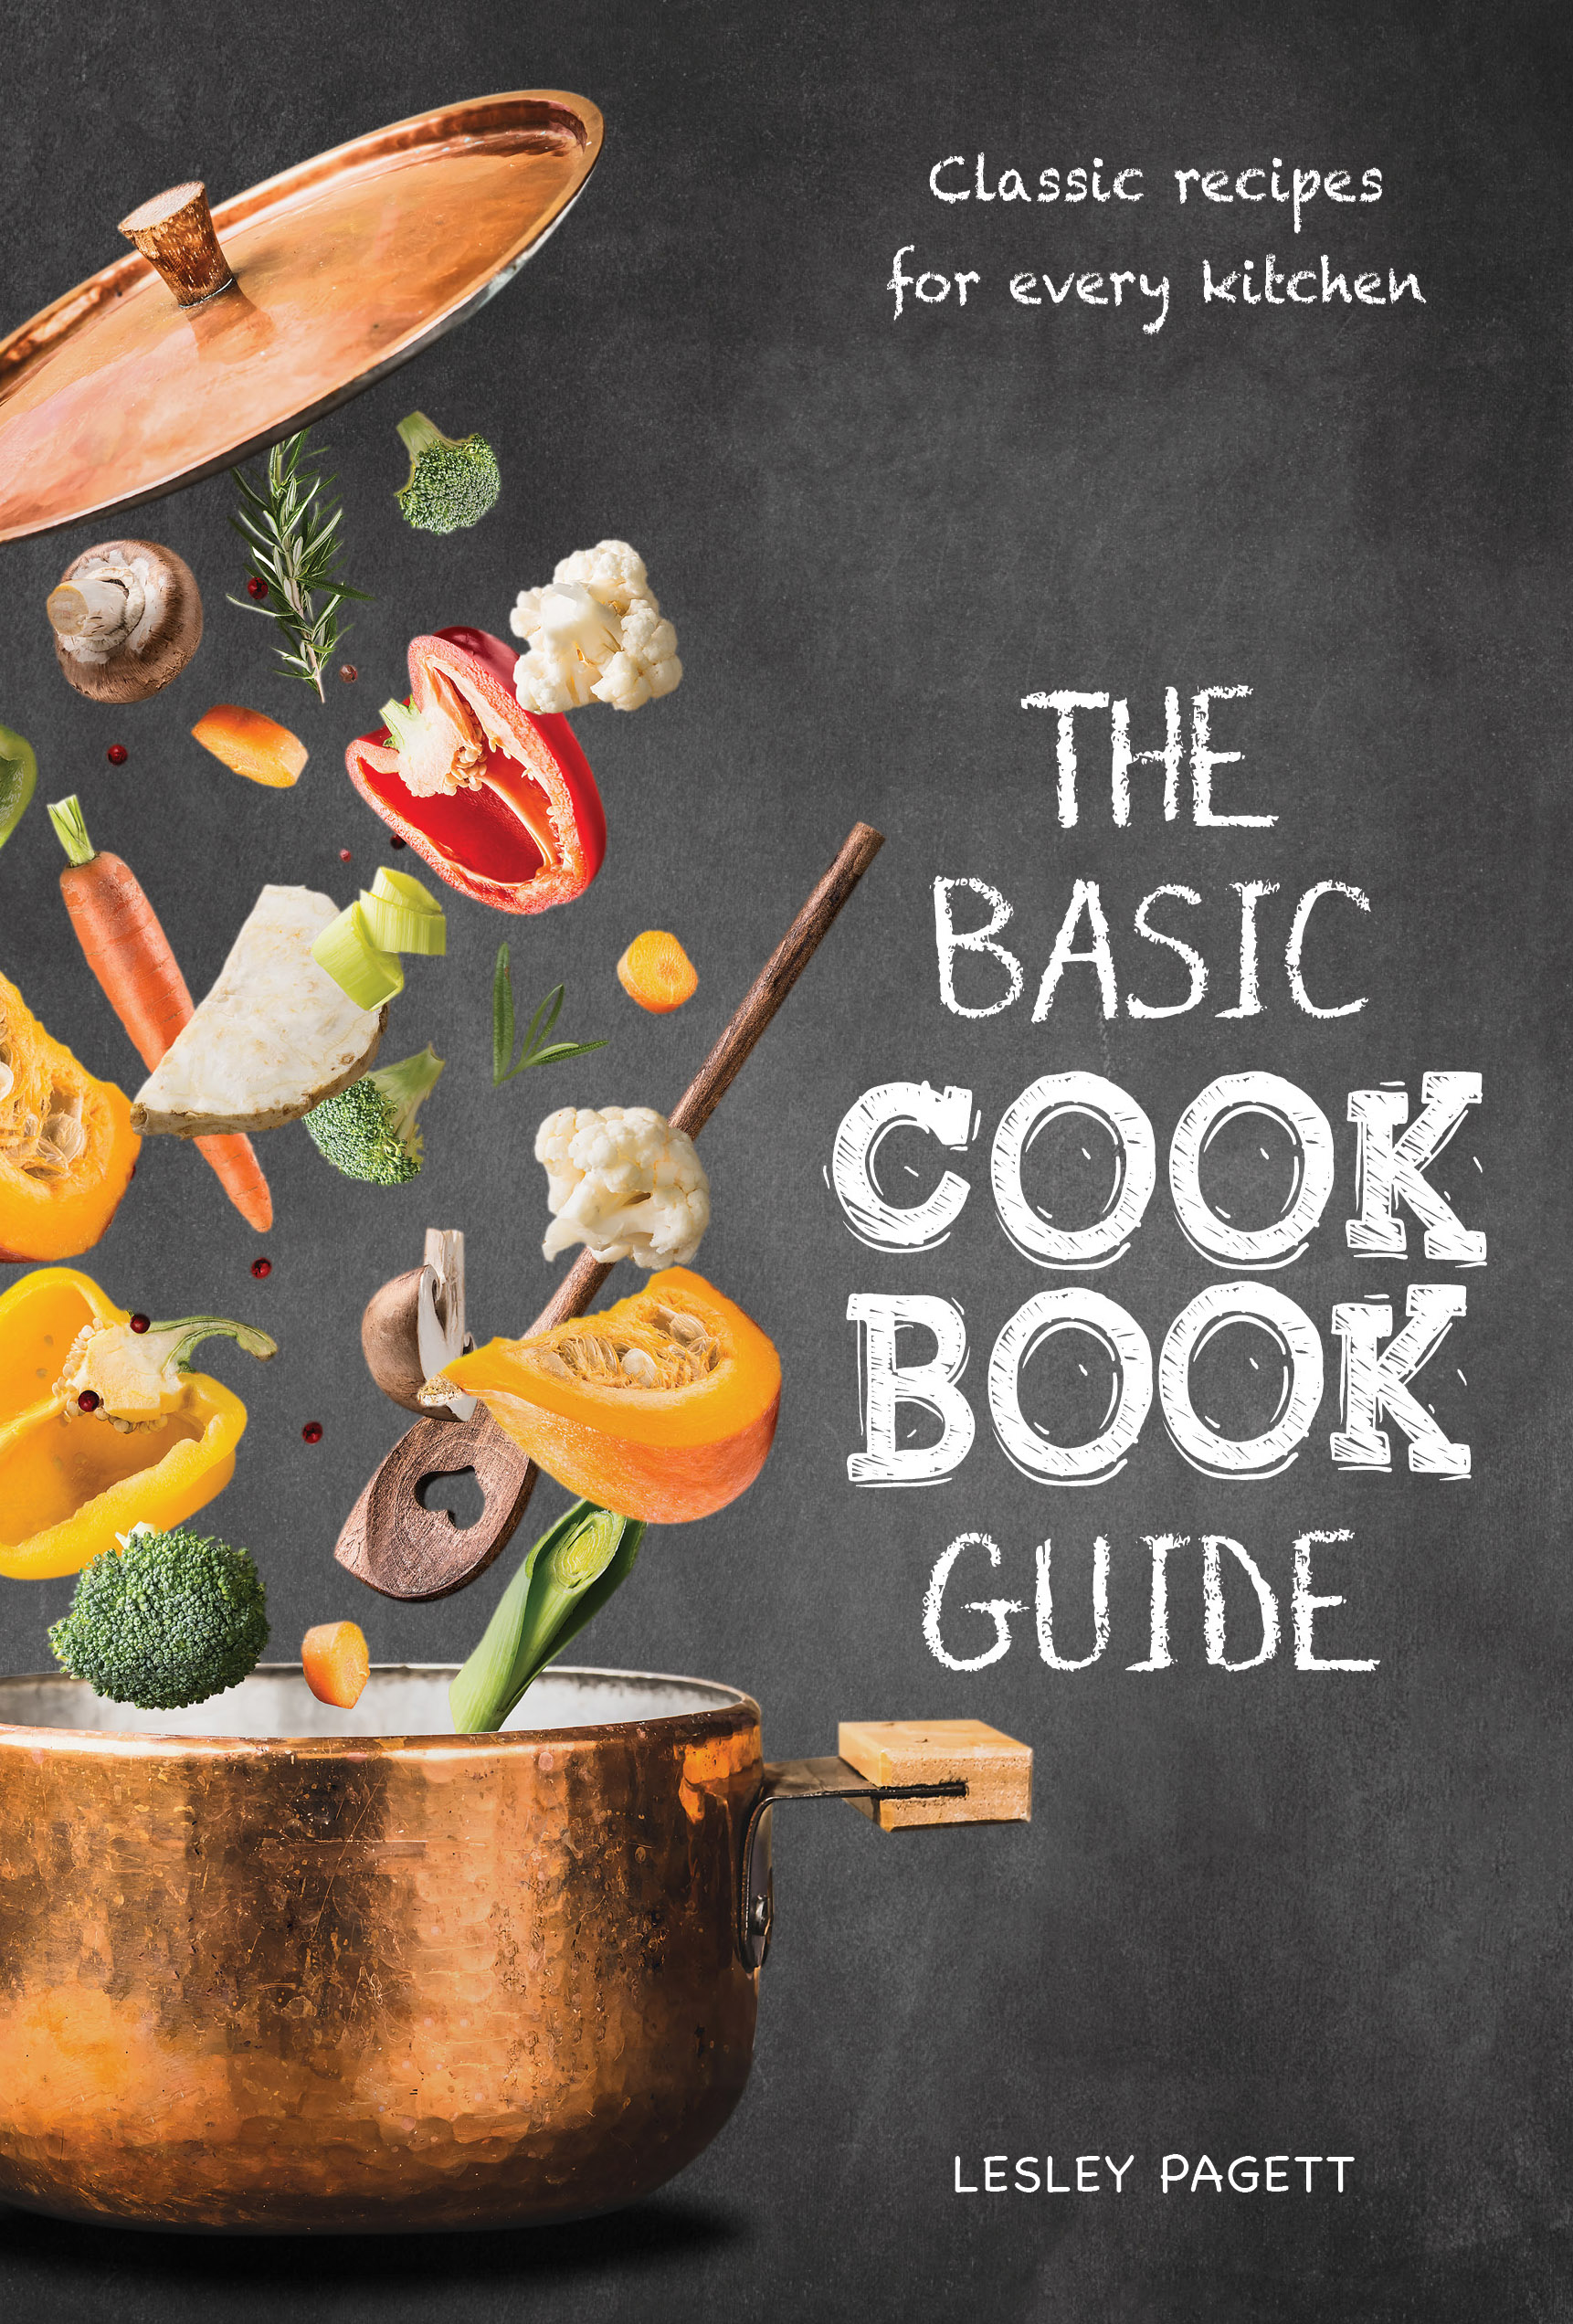 The Basic Cookbook Guide